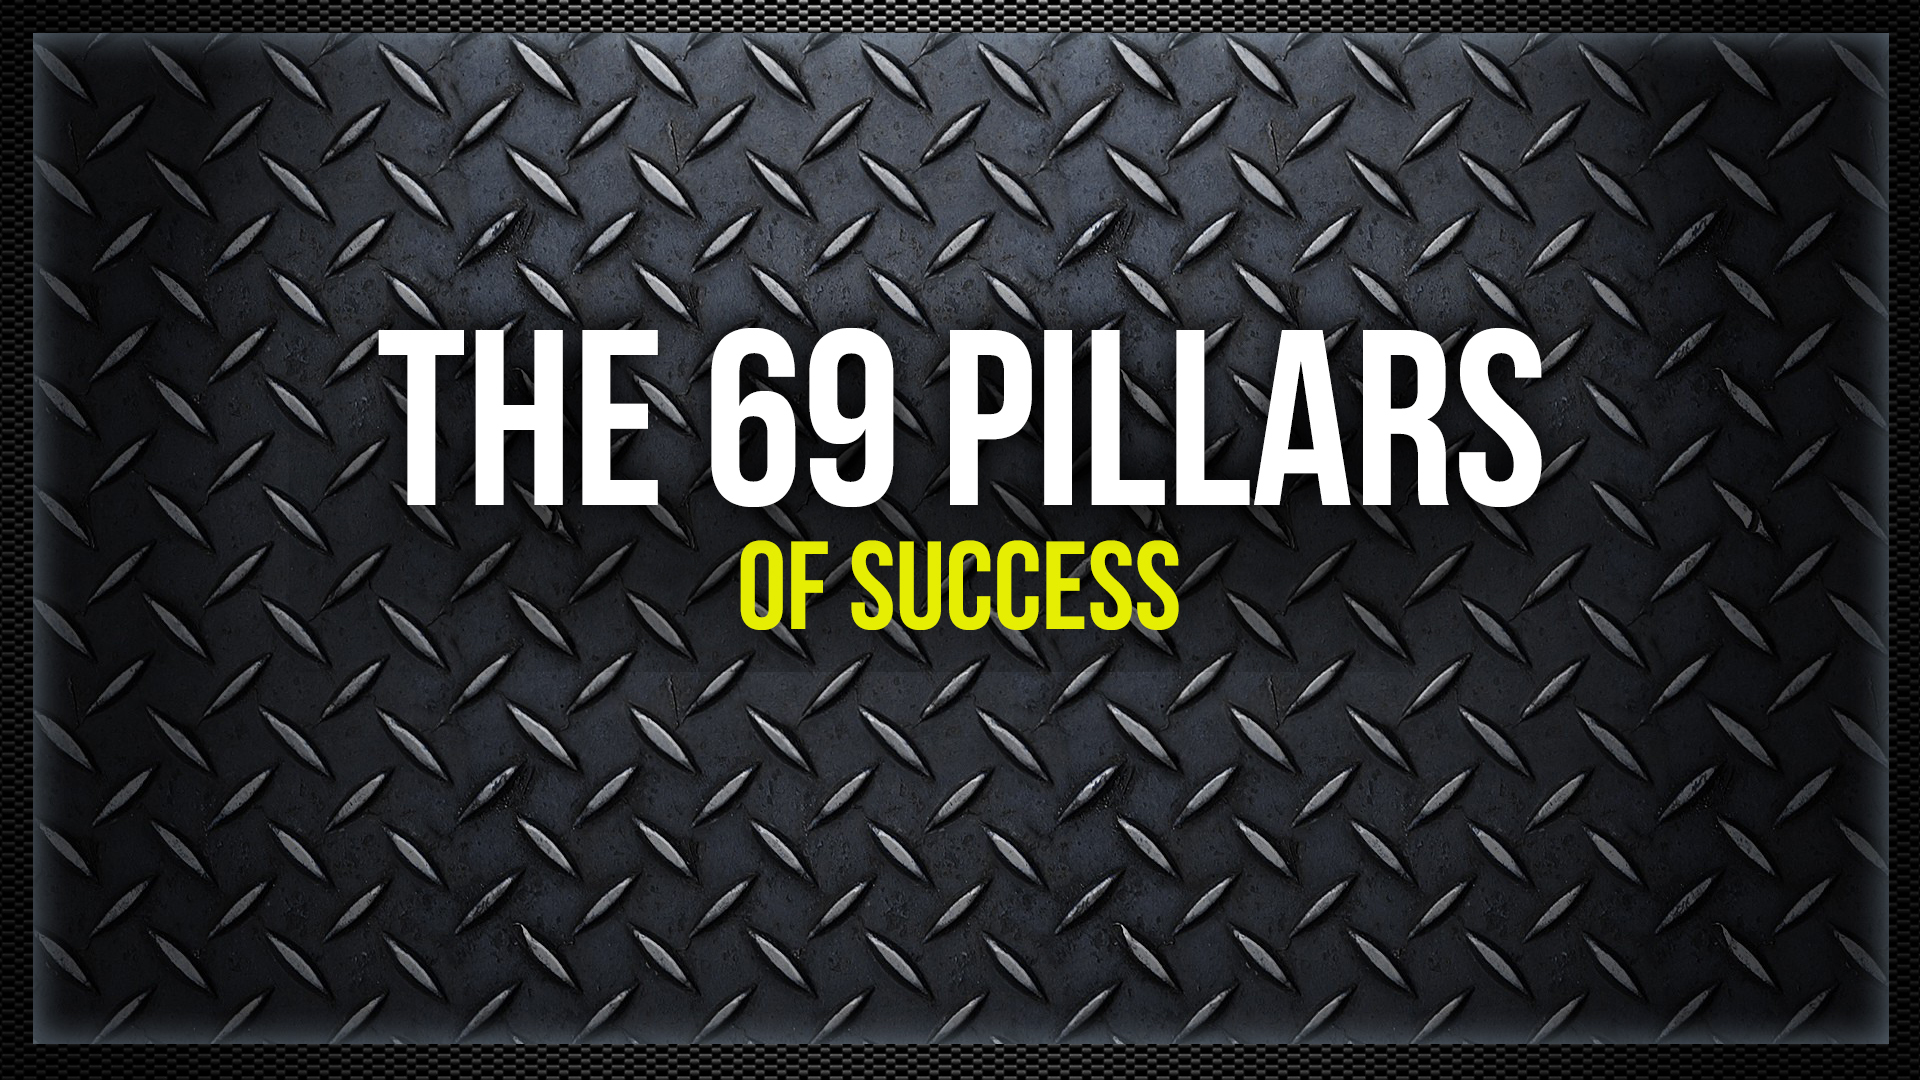 69 Pillars Of Success